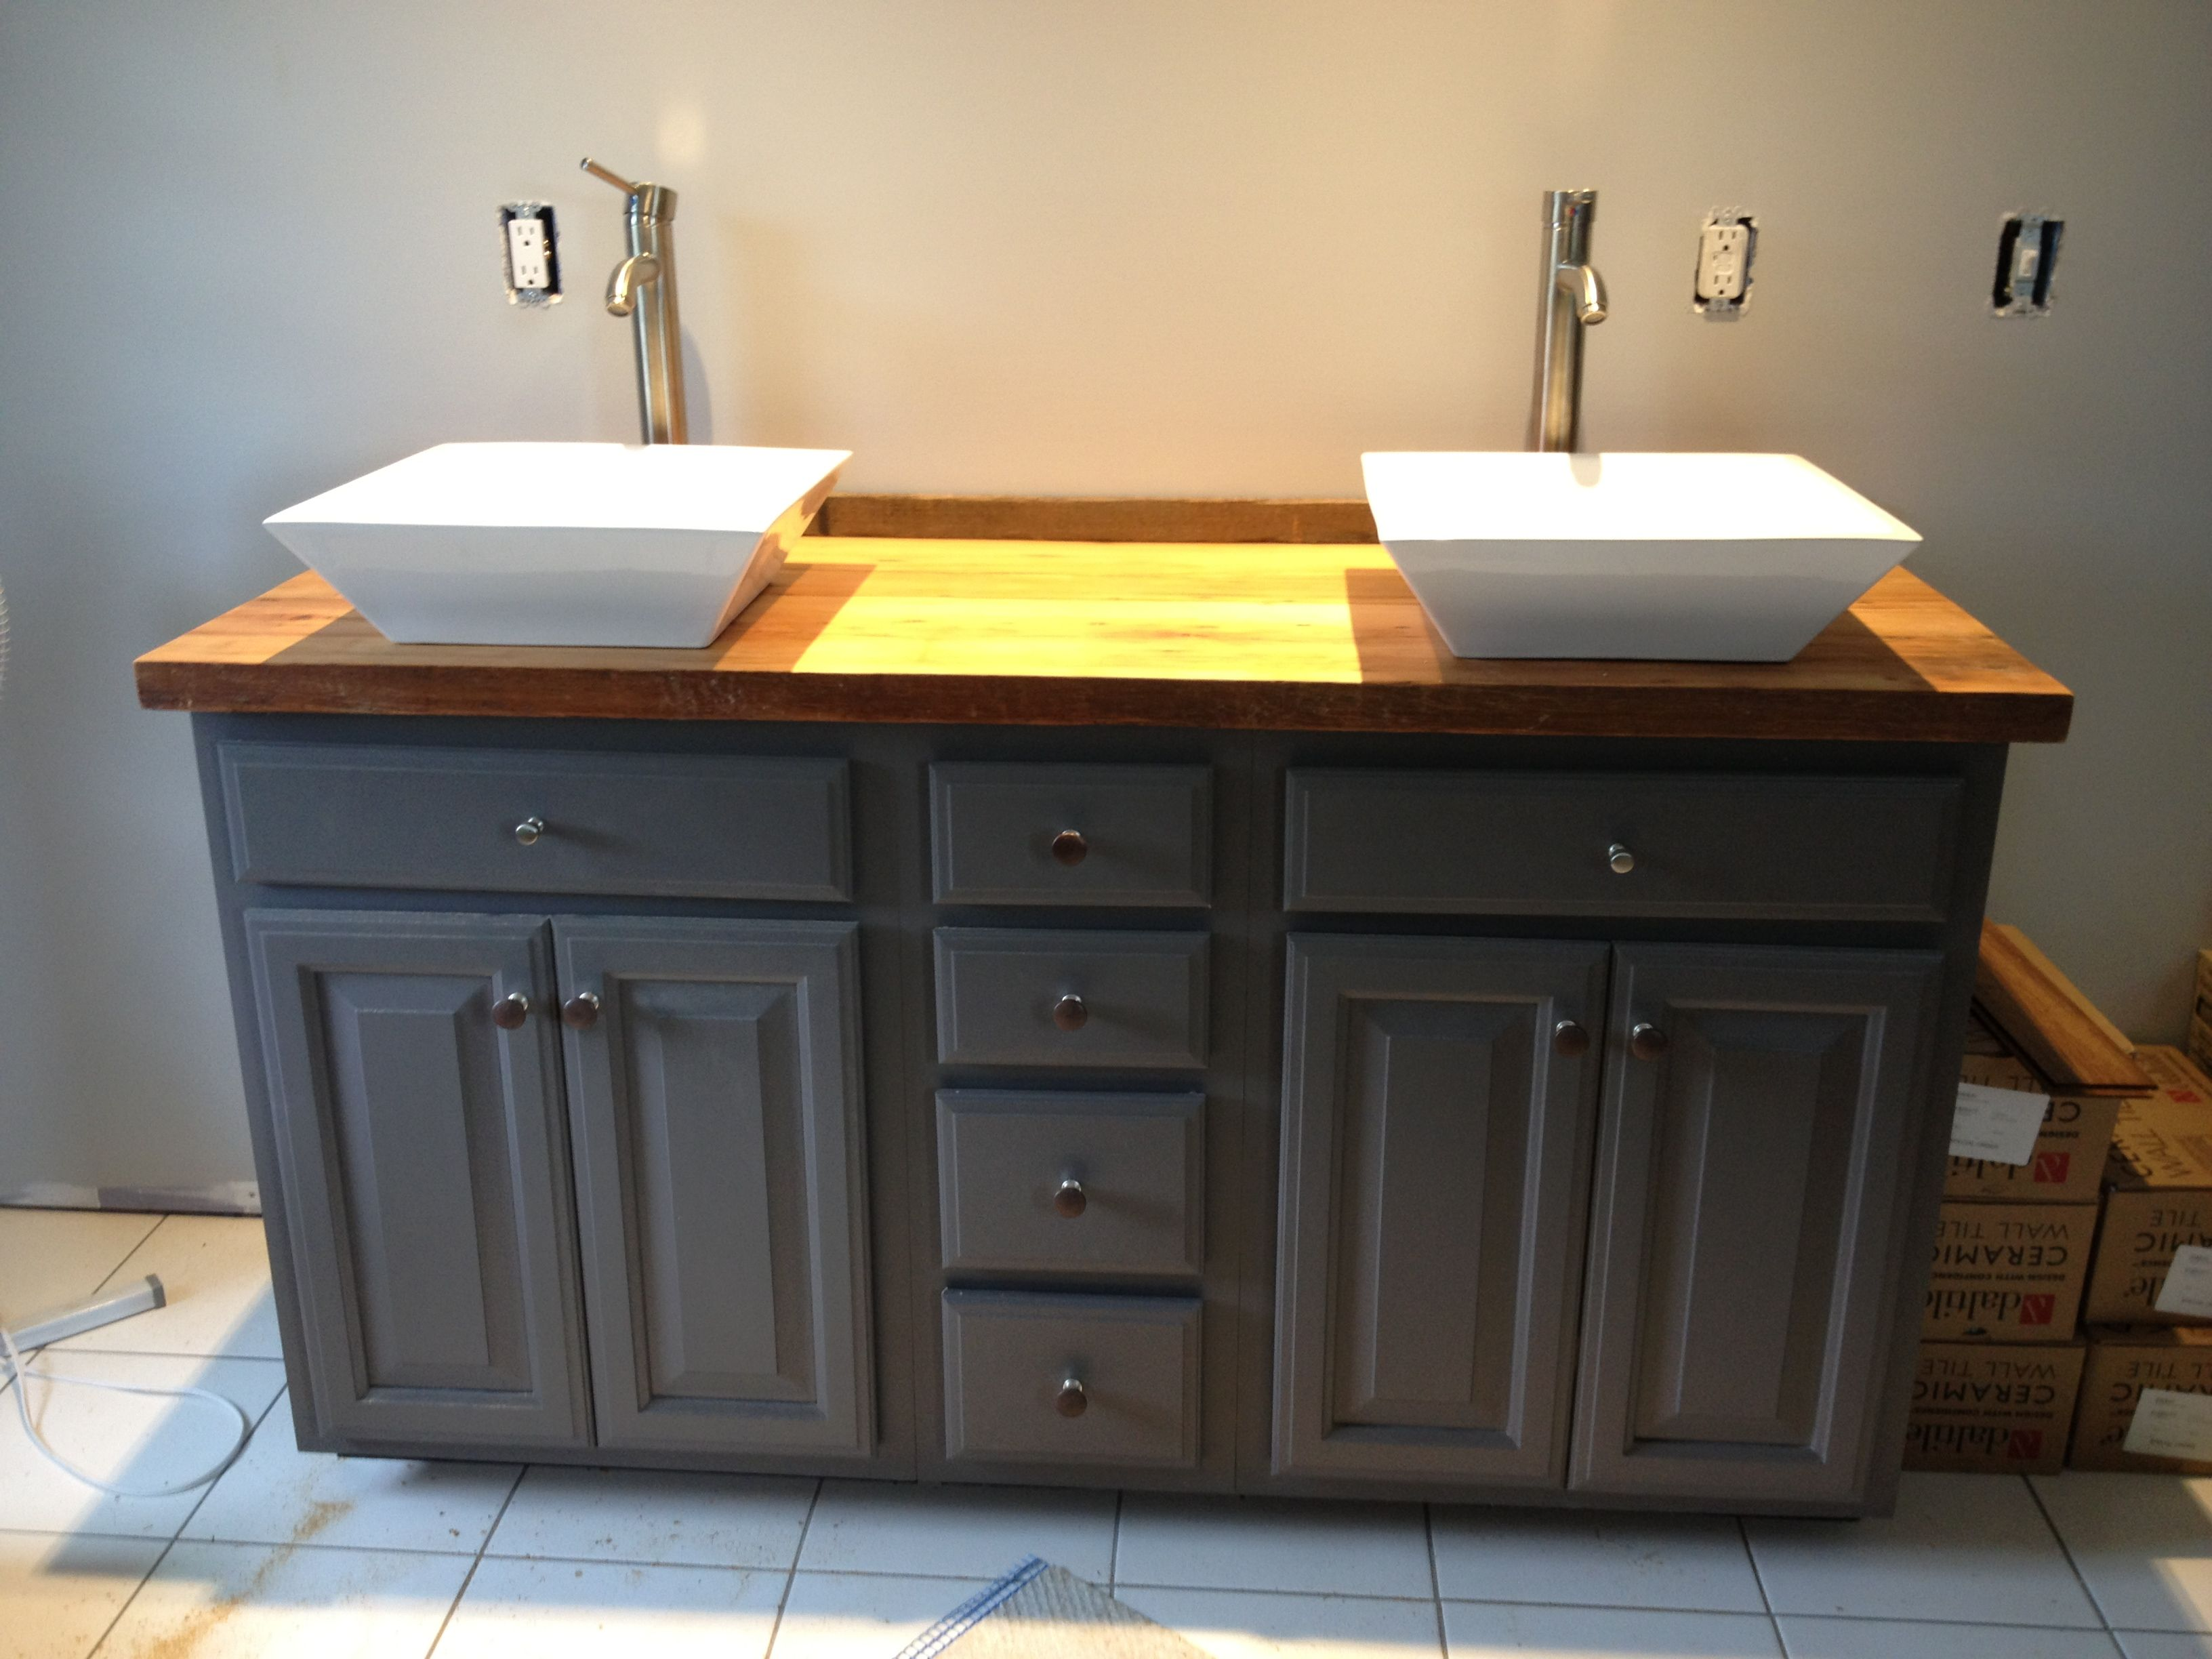 diy bathroom vanity used the barn wood hemlock pieces finished with tung oil counter top. Black Bedroom Furniture Sets. Home Design Ideas